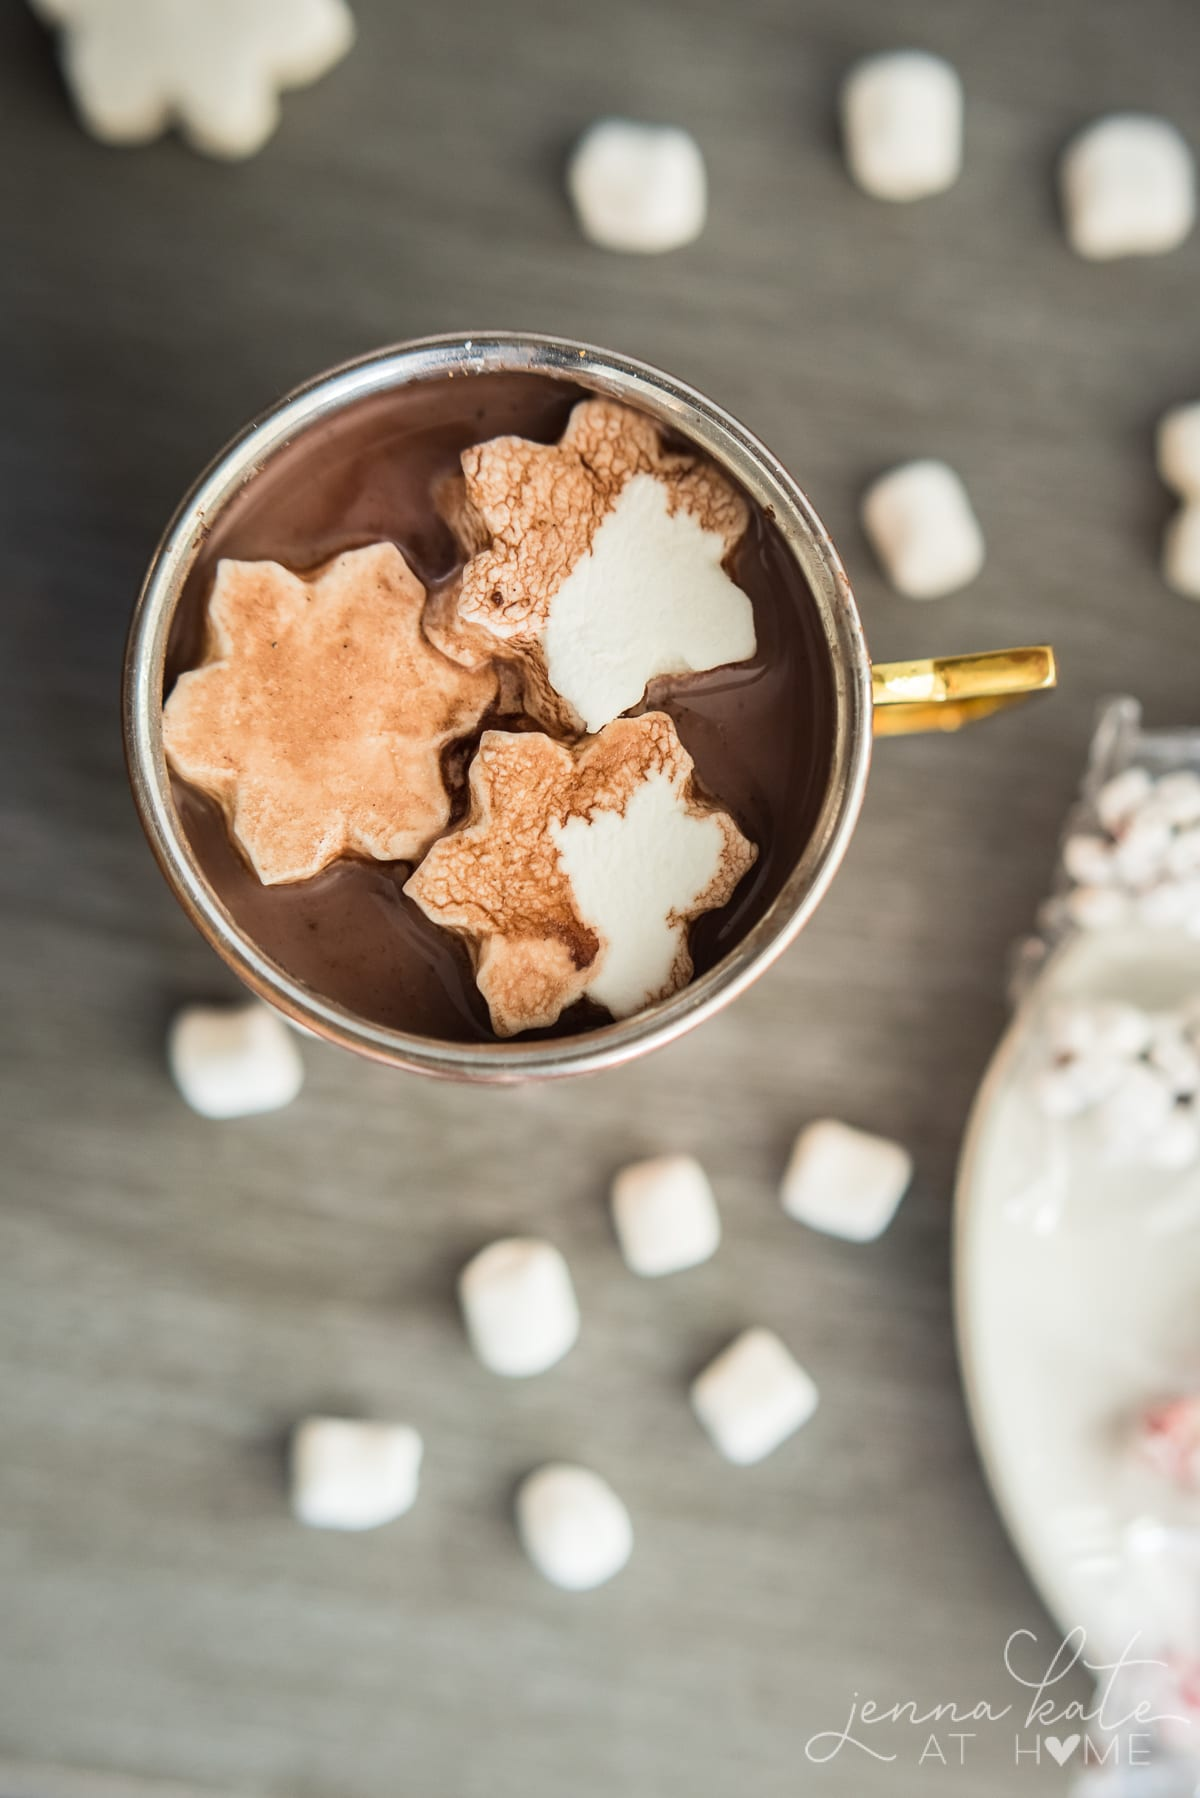 Snowflake marshmallows floating in a mug of hot chocolate